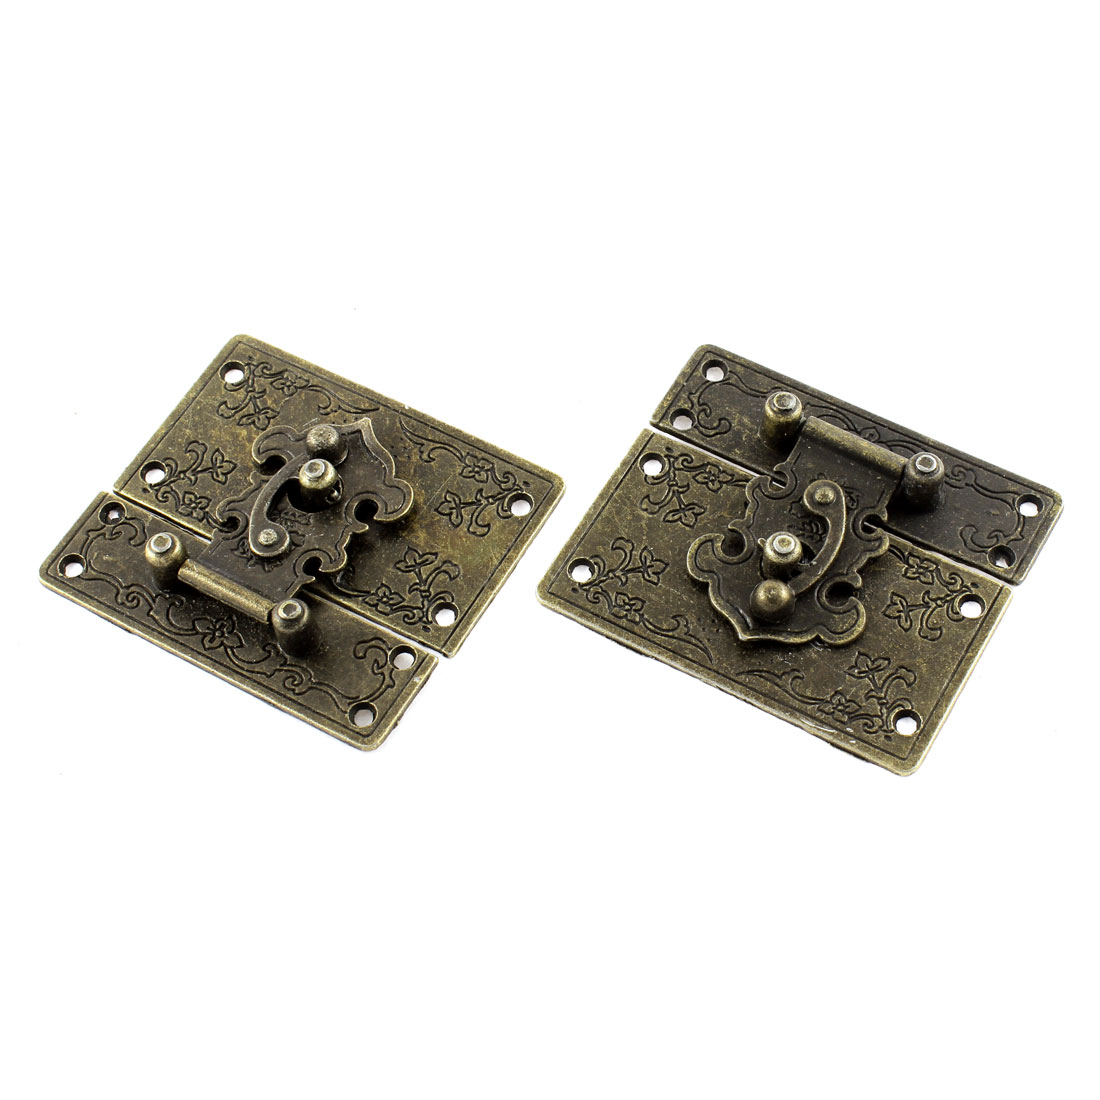 2pcs 67mmx58mm Vintage Style Jewelry Box Hasp Latch Lock w Screws